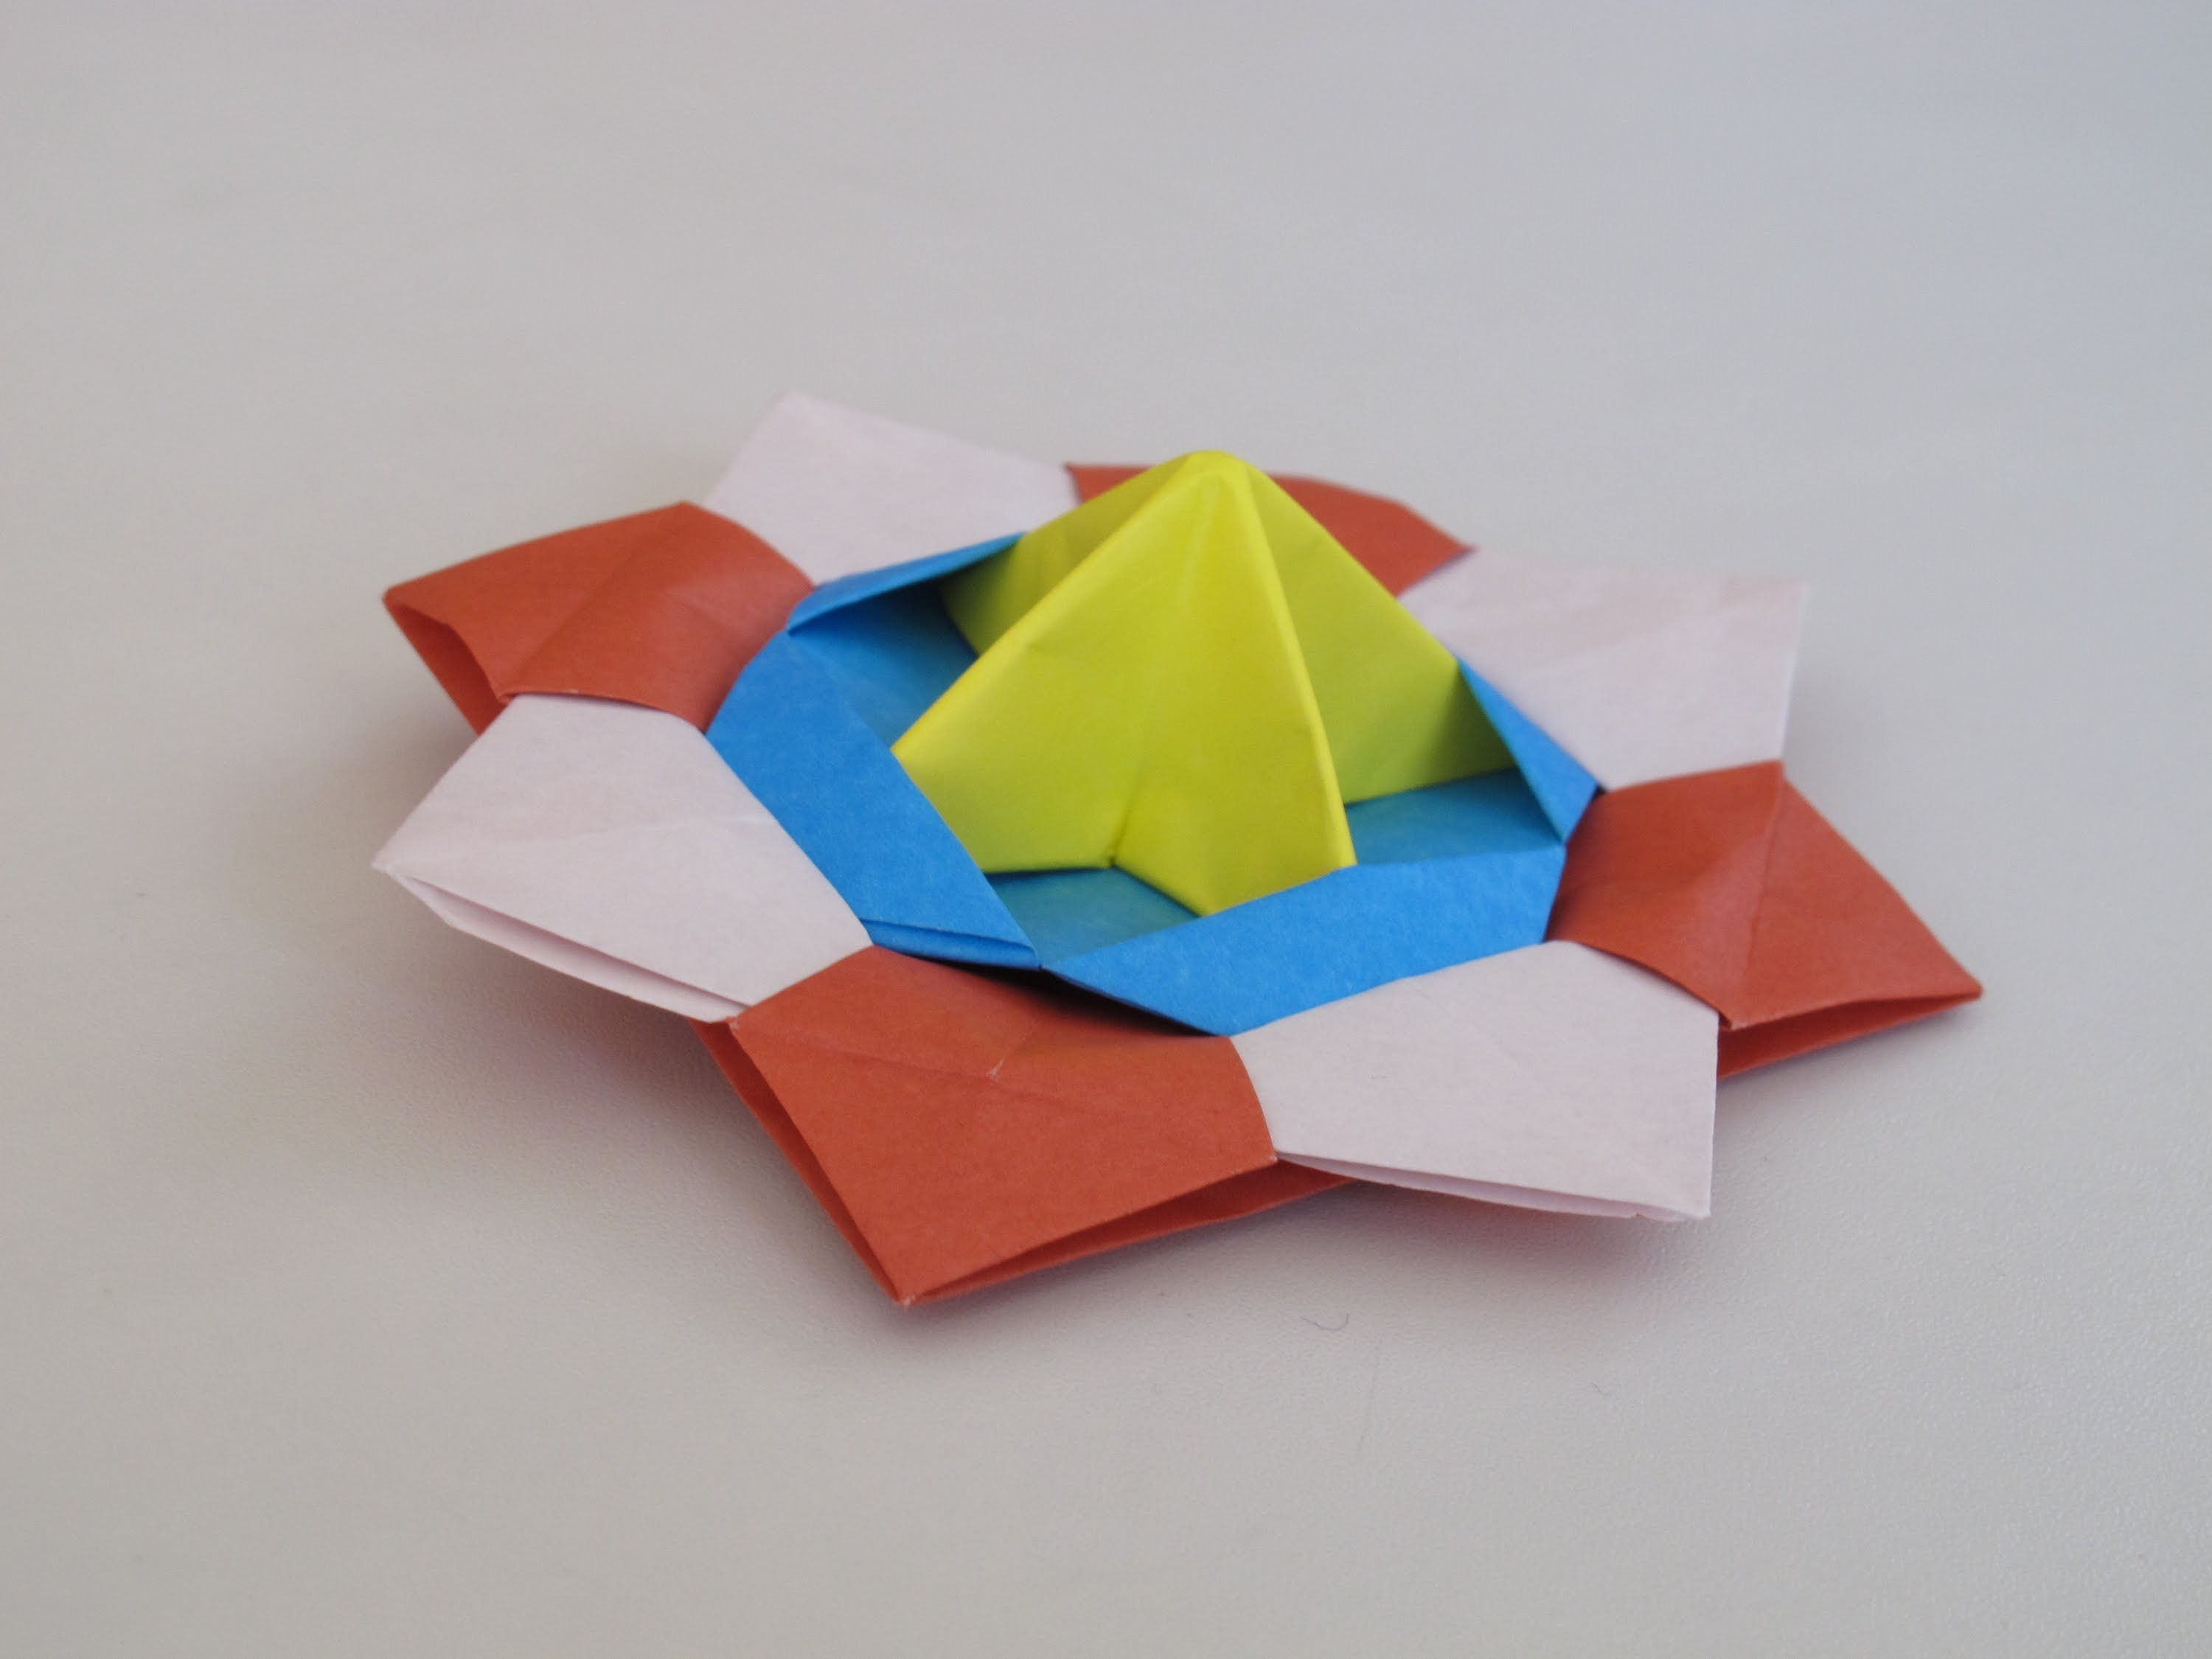 Origami - How to Make a Spinning Top